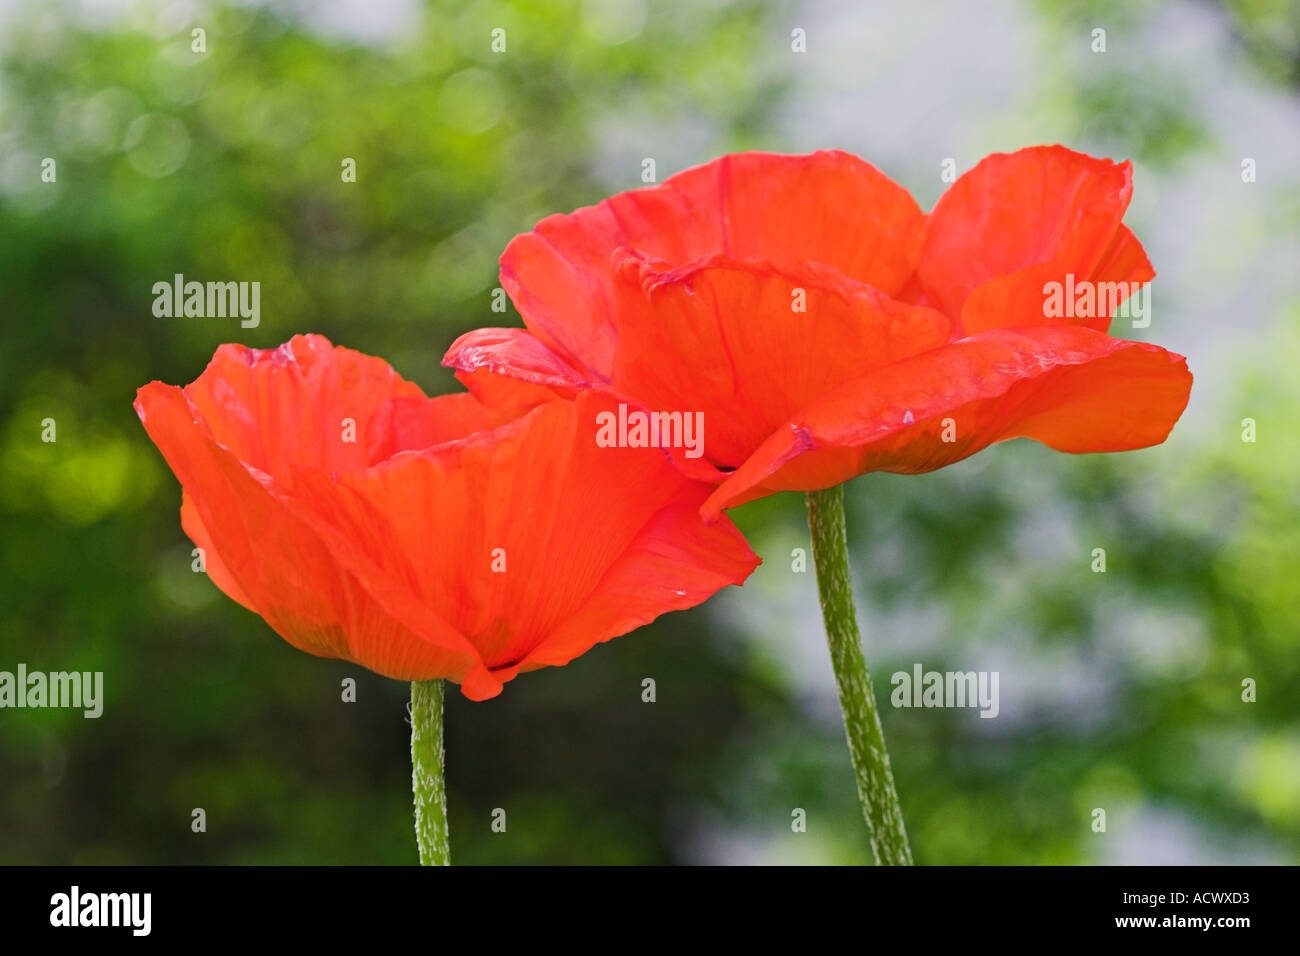 red poppy flowers seen from above during spring Stock Photo